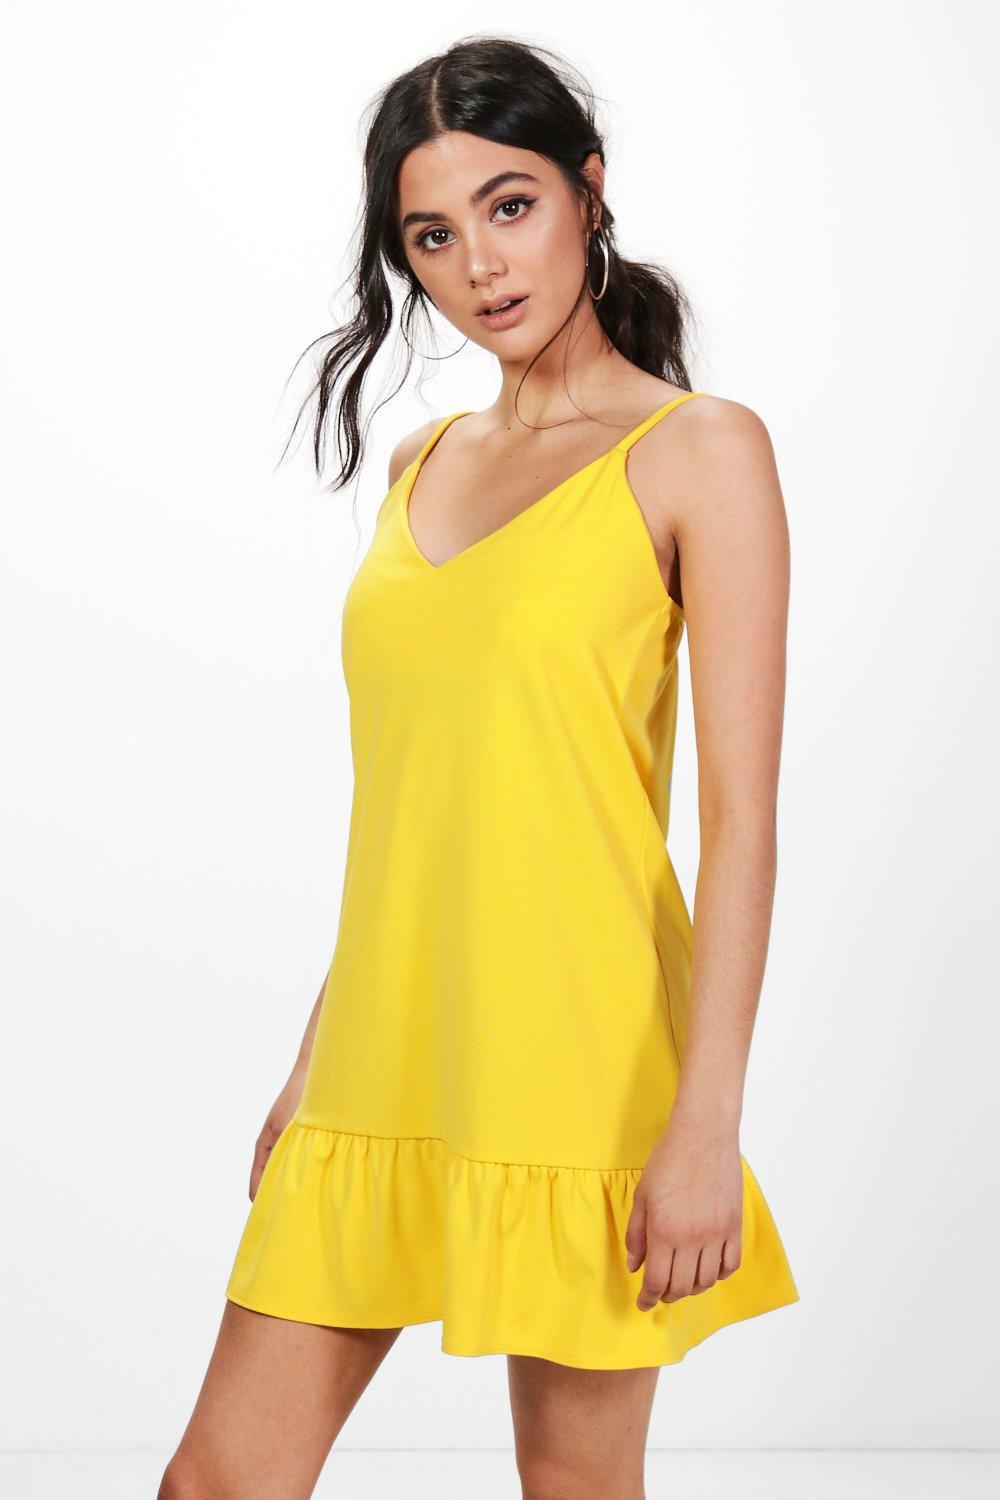 Whole World Shipping Boohoo Strappy Frill Hem Shift Dress Low Shipping Cheap Price x53iyCW